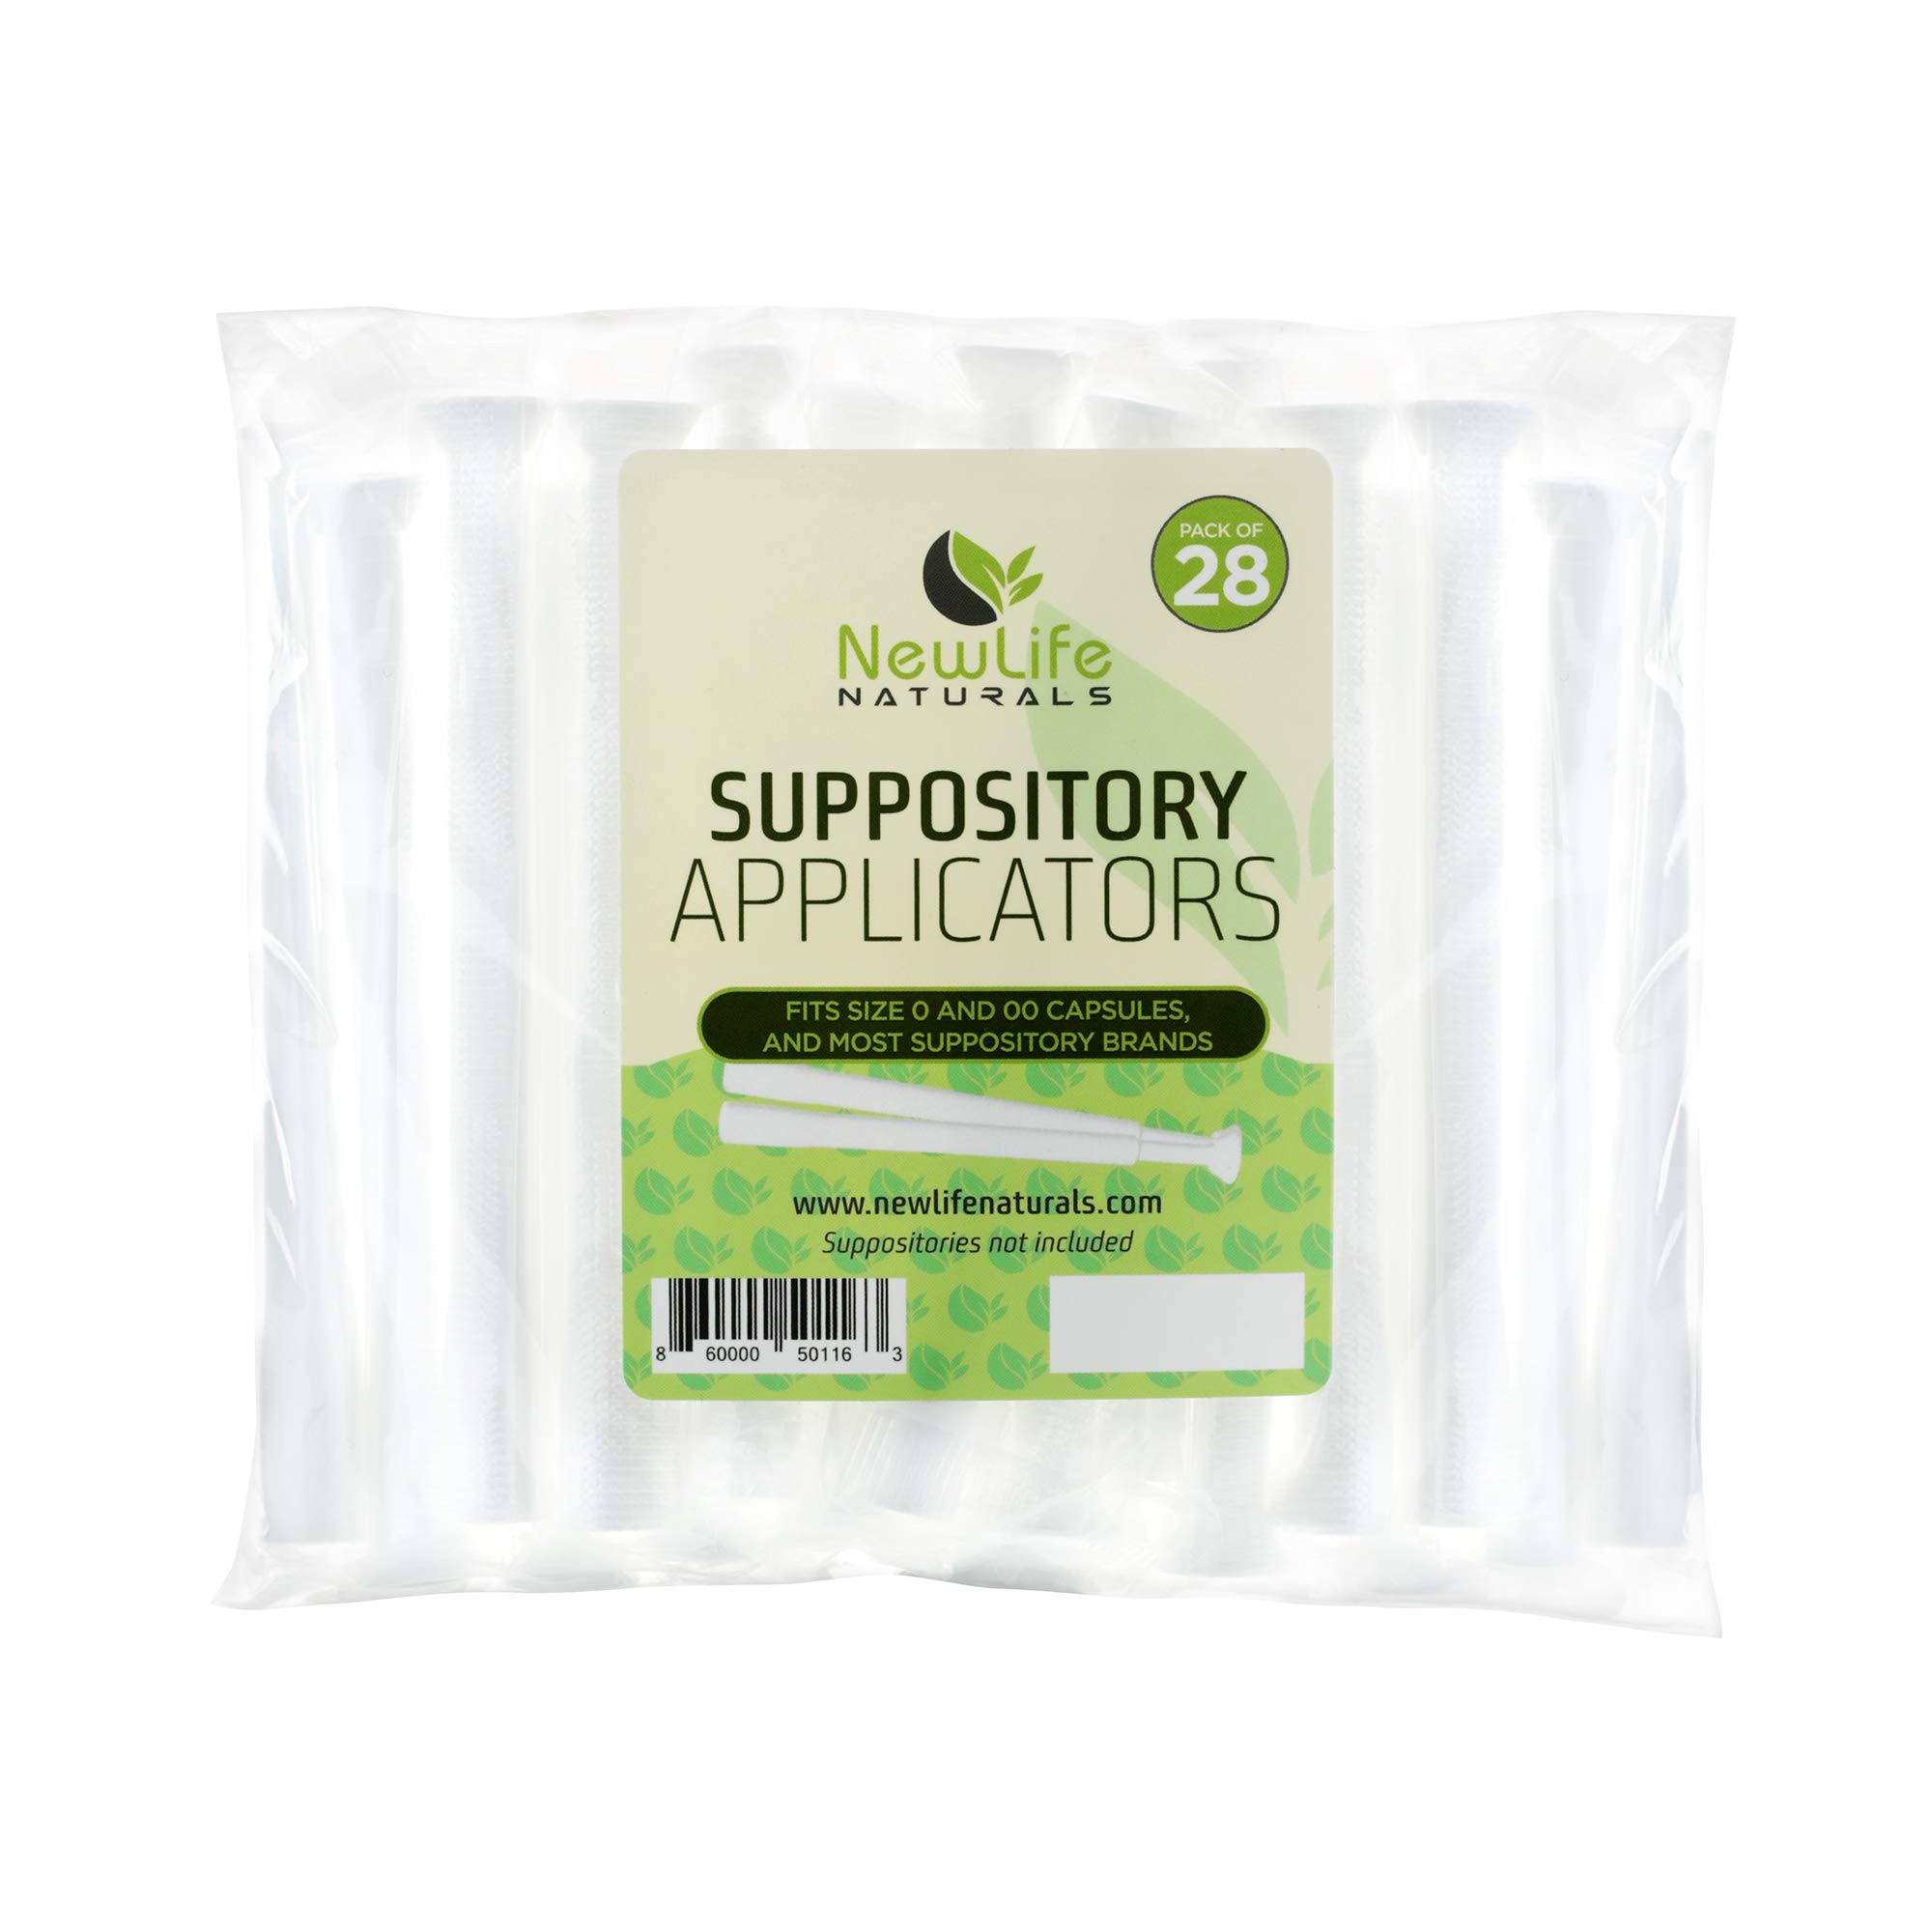 Disposable Plastic Vaginal Suppository Applicators: Individually Wrapped Suppository Applicator for Women - Fits Most Boric Acid Suppositories, Pills, Tablets and Size 0 and 00 Capsules - 28 Pack by NewLife Naturals